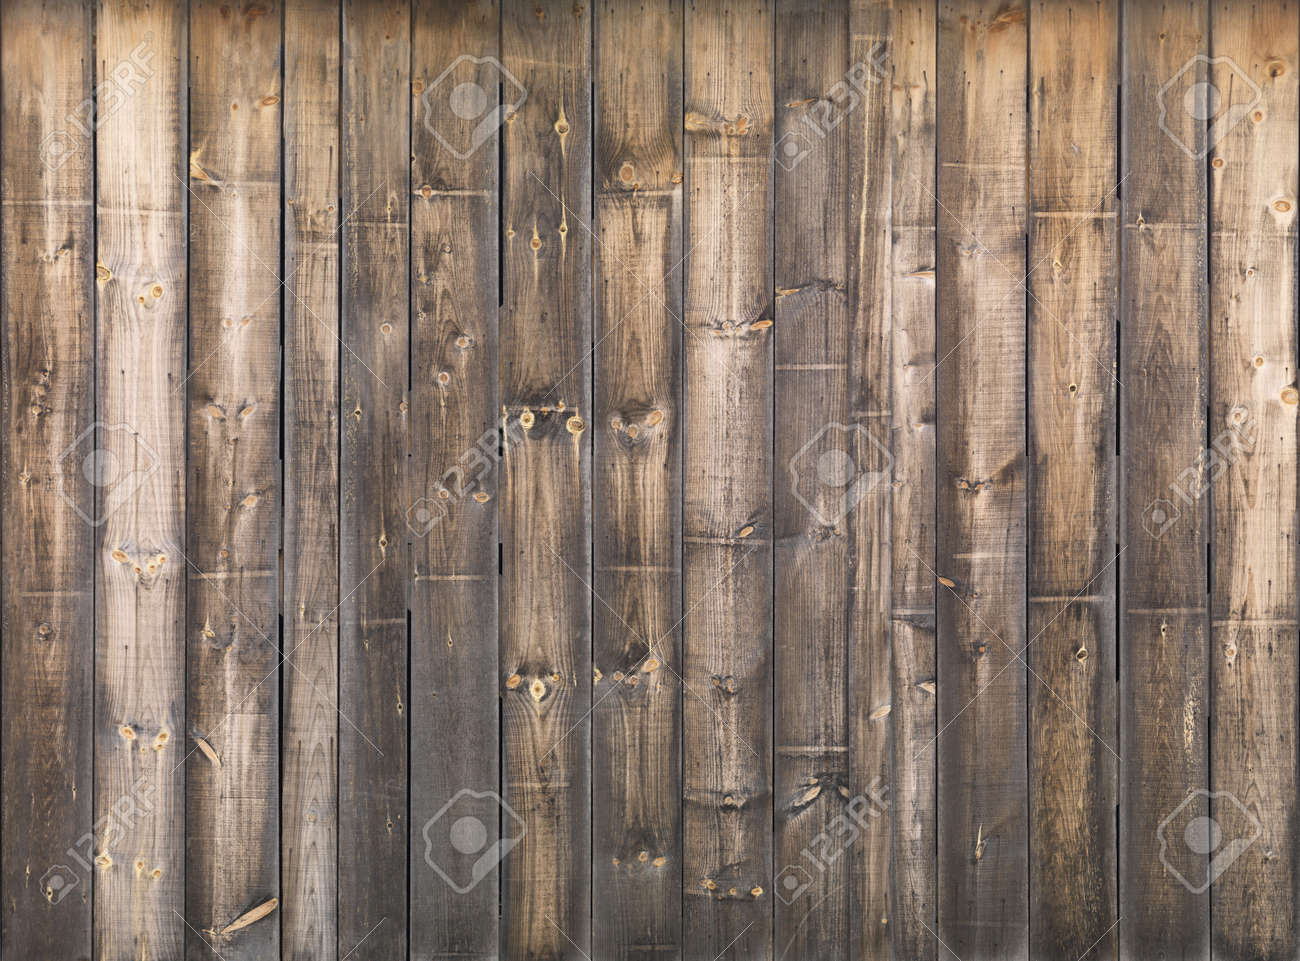 Barn Wood Texture high resolution old wooden wall texture stock photo, picture and